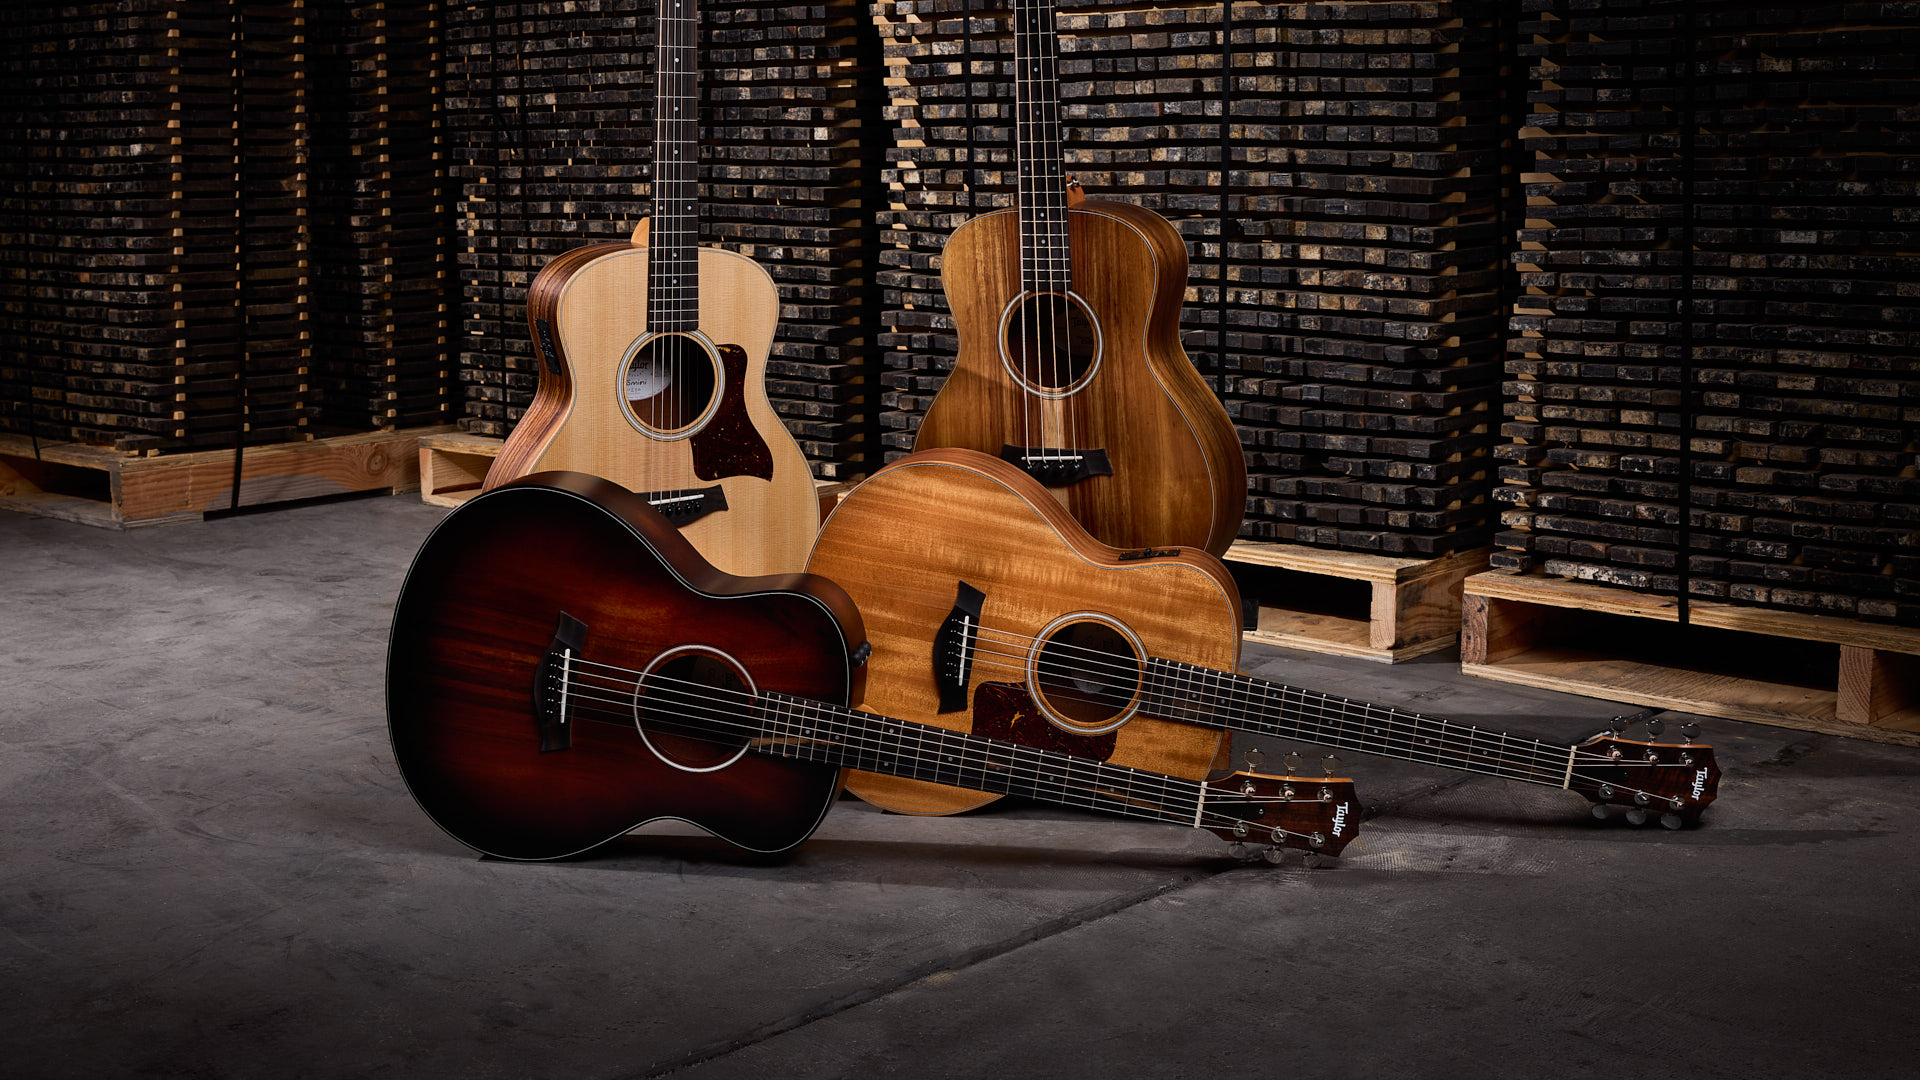 Four Taylor GS Mini acoustic guitars in a group with two standing vertically and two laying horizontally